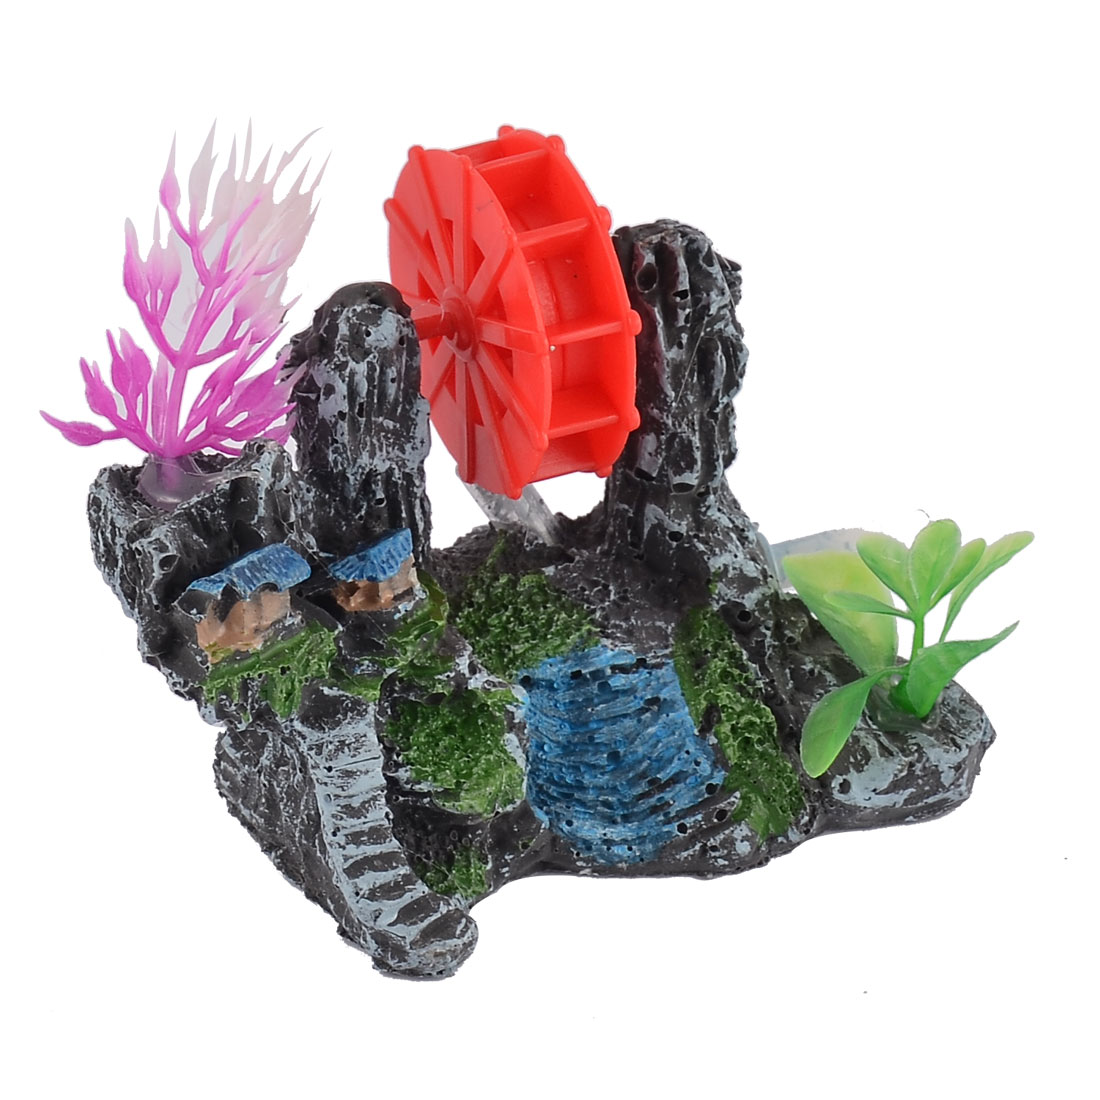 Aquarium Ceramic Waterwheel Water Plants Ornament Manmade Landscape for Fish Tank